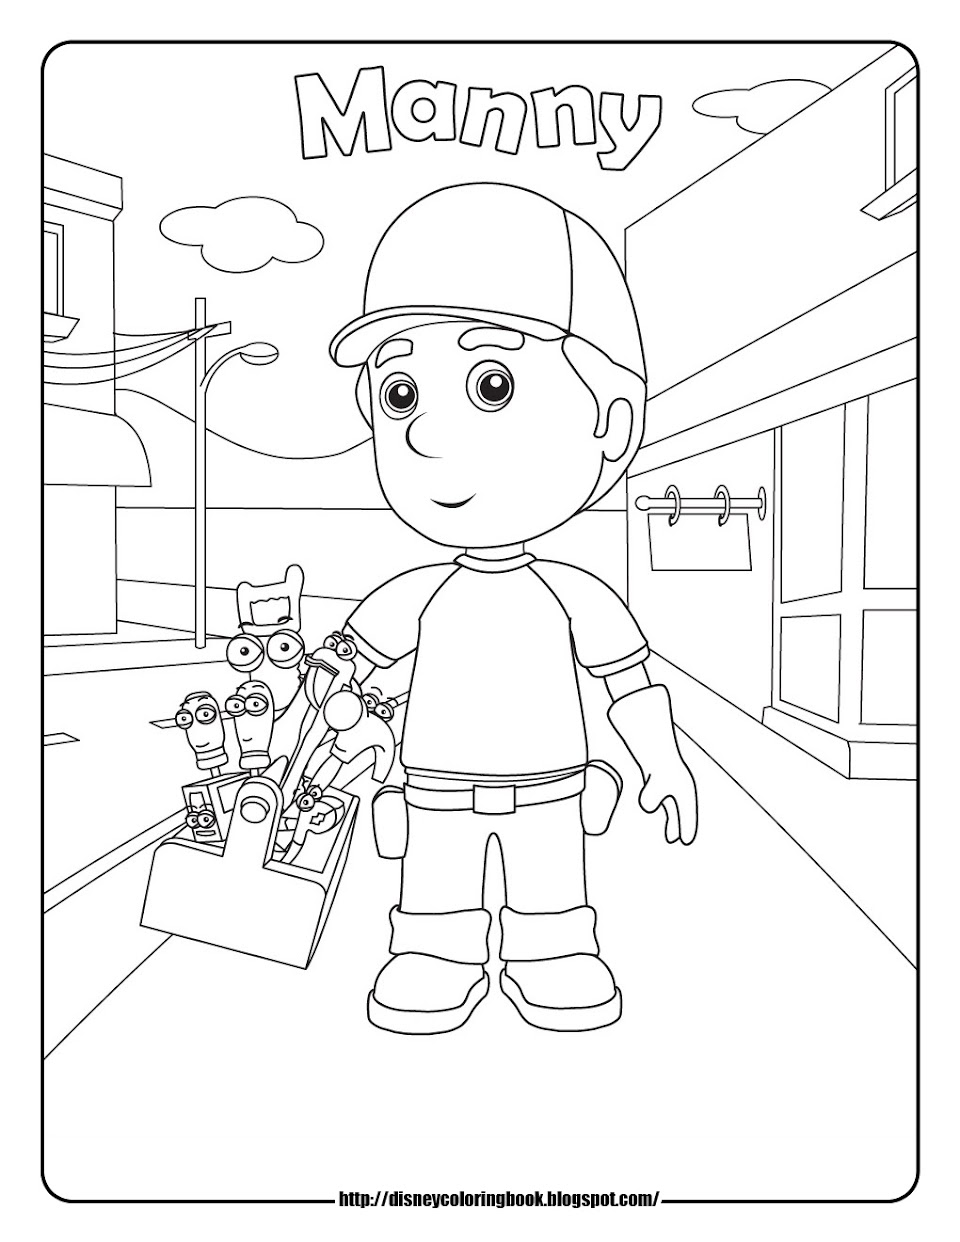 Clip Art I Am Special Coloring Pages i am special coloring pages futpal com 1000 ideas about god made me on pinterest days of creation